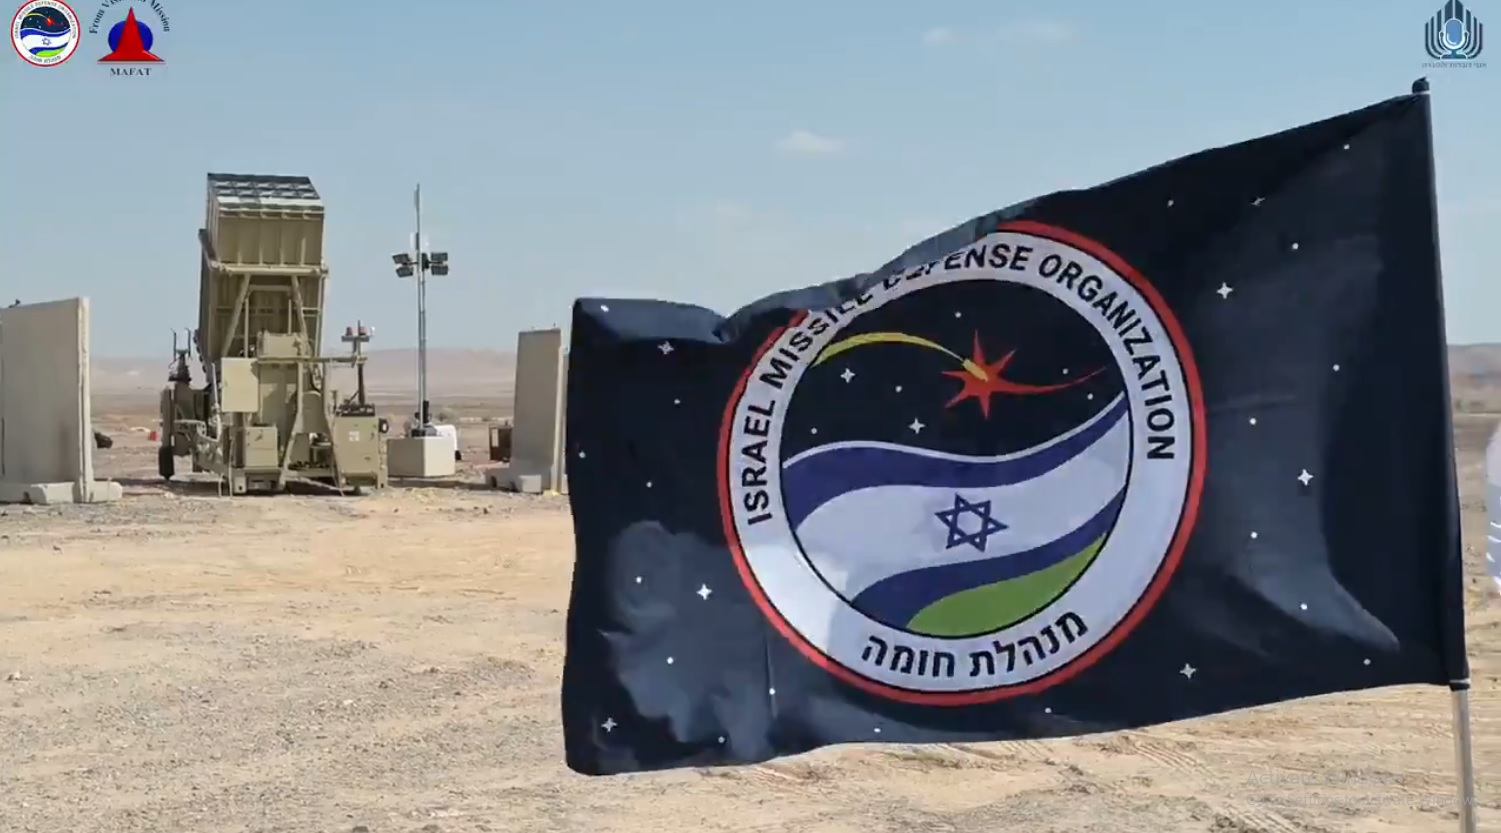 Israel Missile Defense Organisation and Rafael Completes Tests of Upgraded Iron Dome System